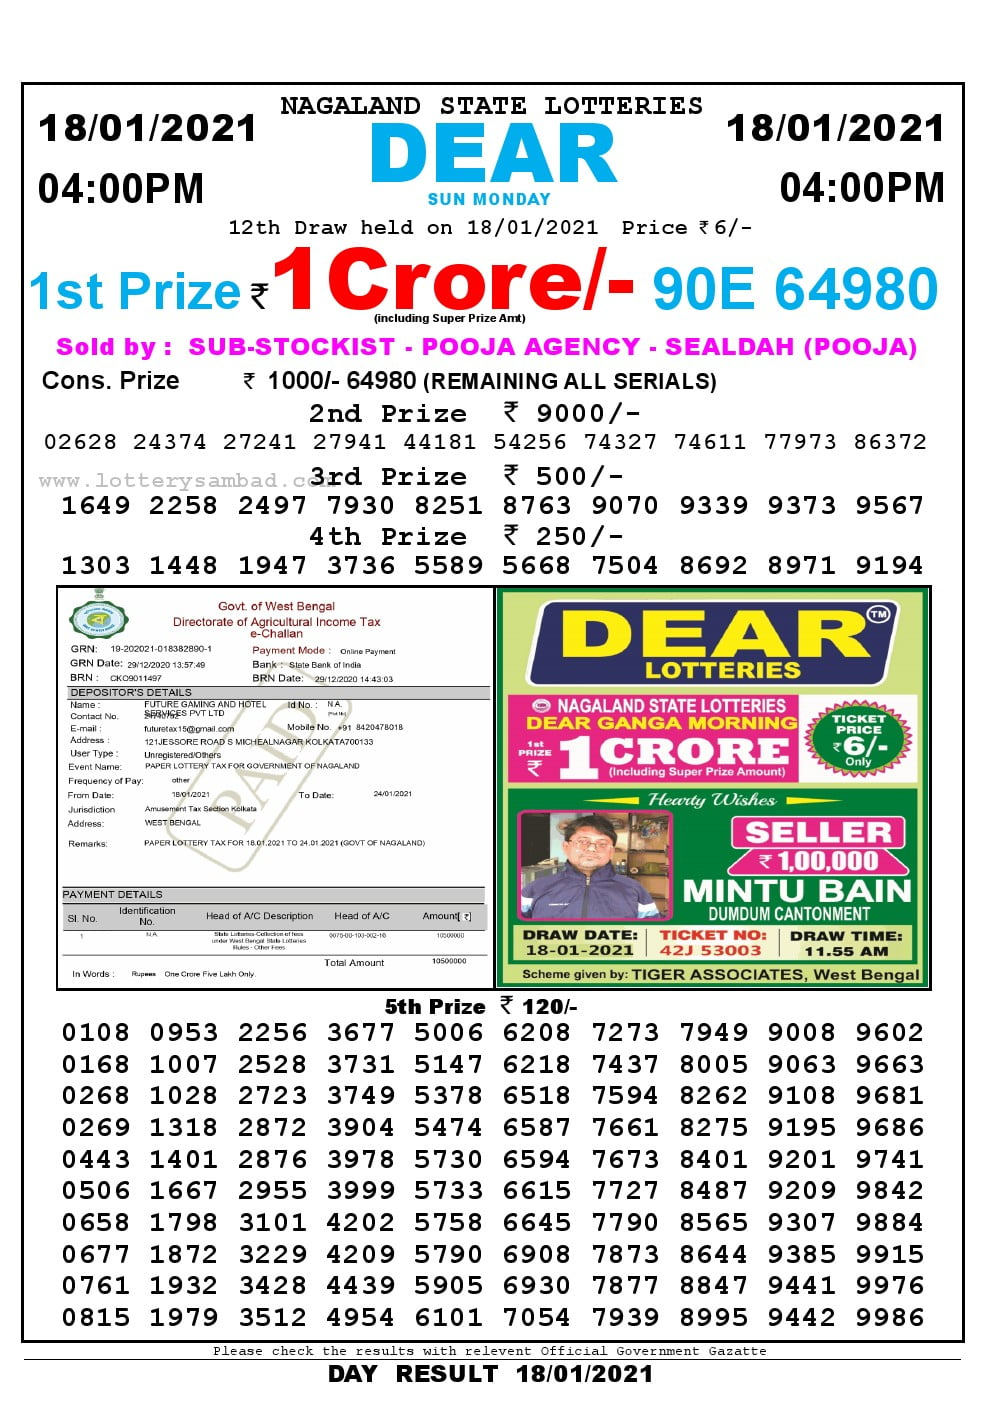 Dear Lottery Result Today 4pm 18/01/2021 Nagaland State lottery result pdf